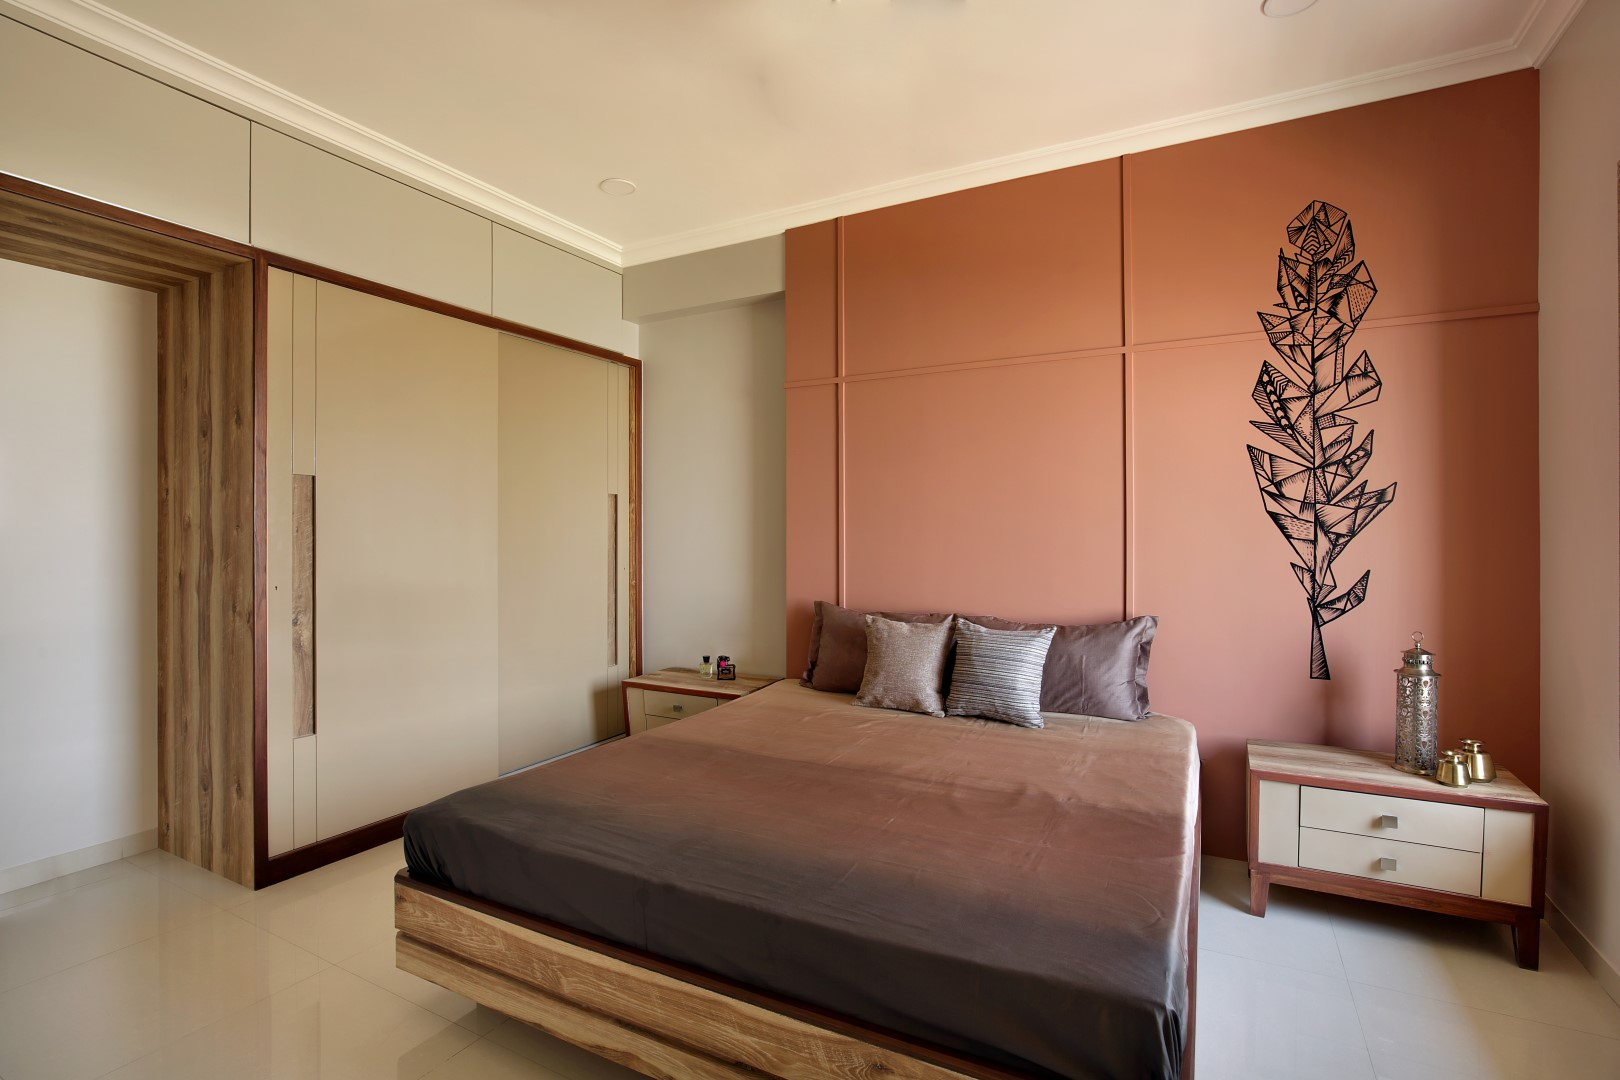 Design Interieur 2 Bhk Interior Design Studio 7 Designs The Architects